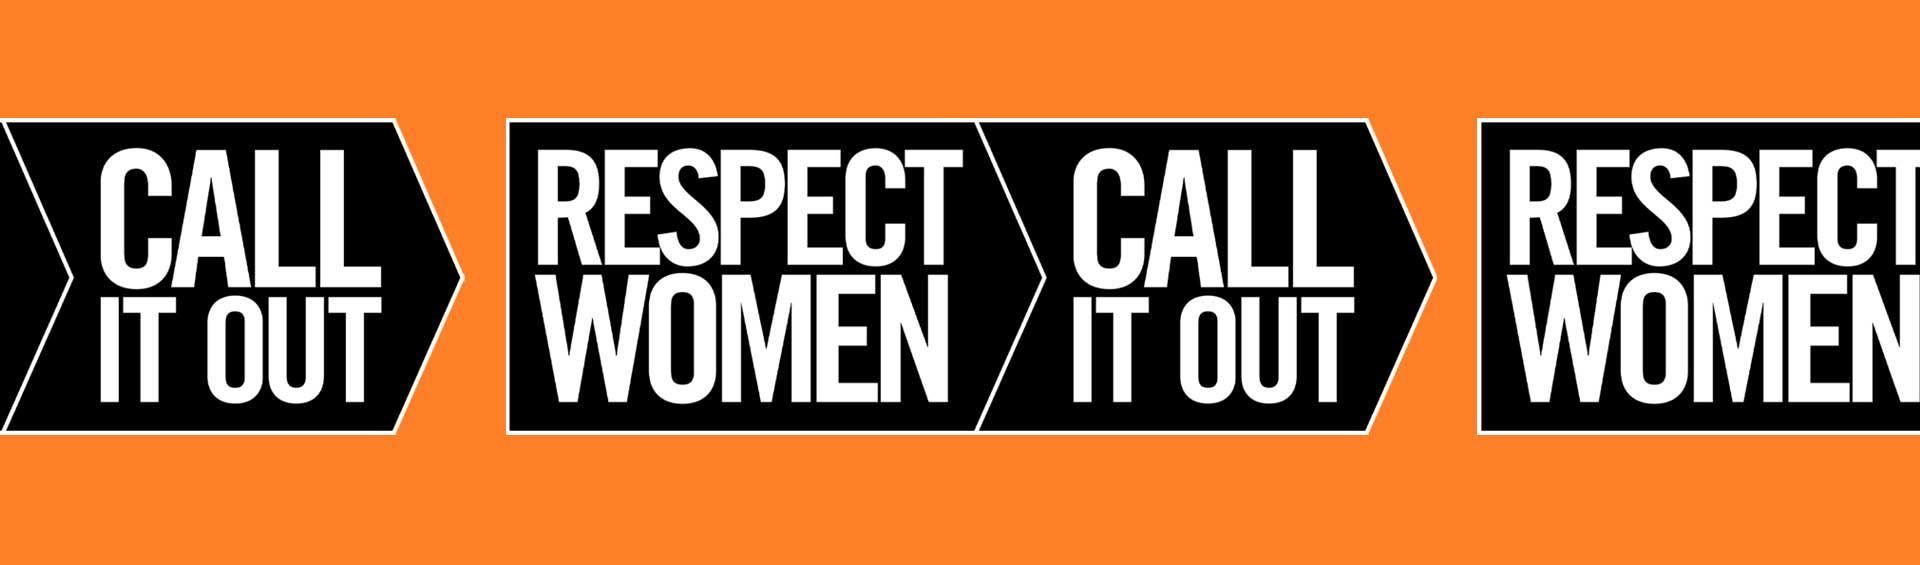 Respect Women - Call It Out banner image